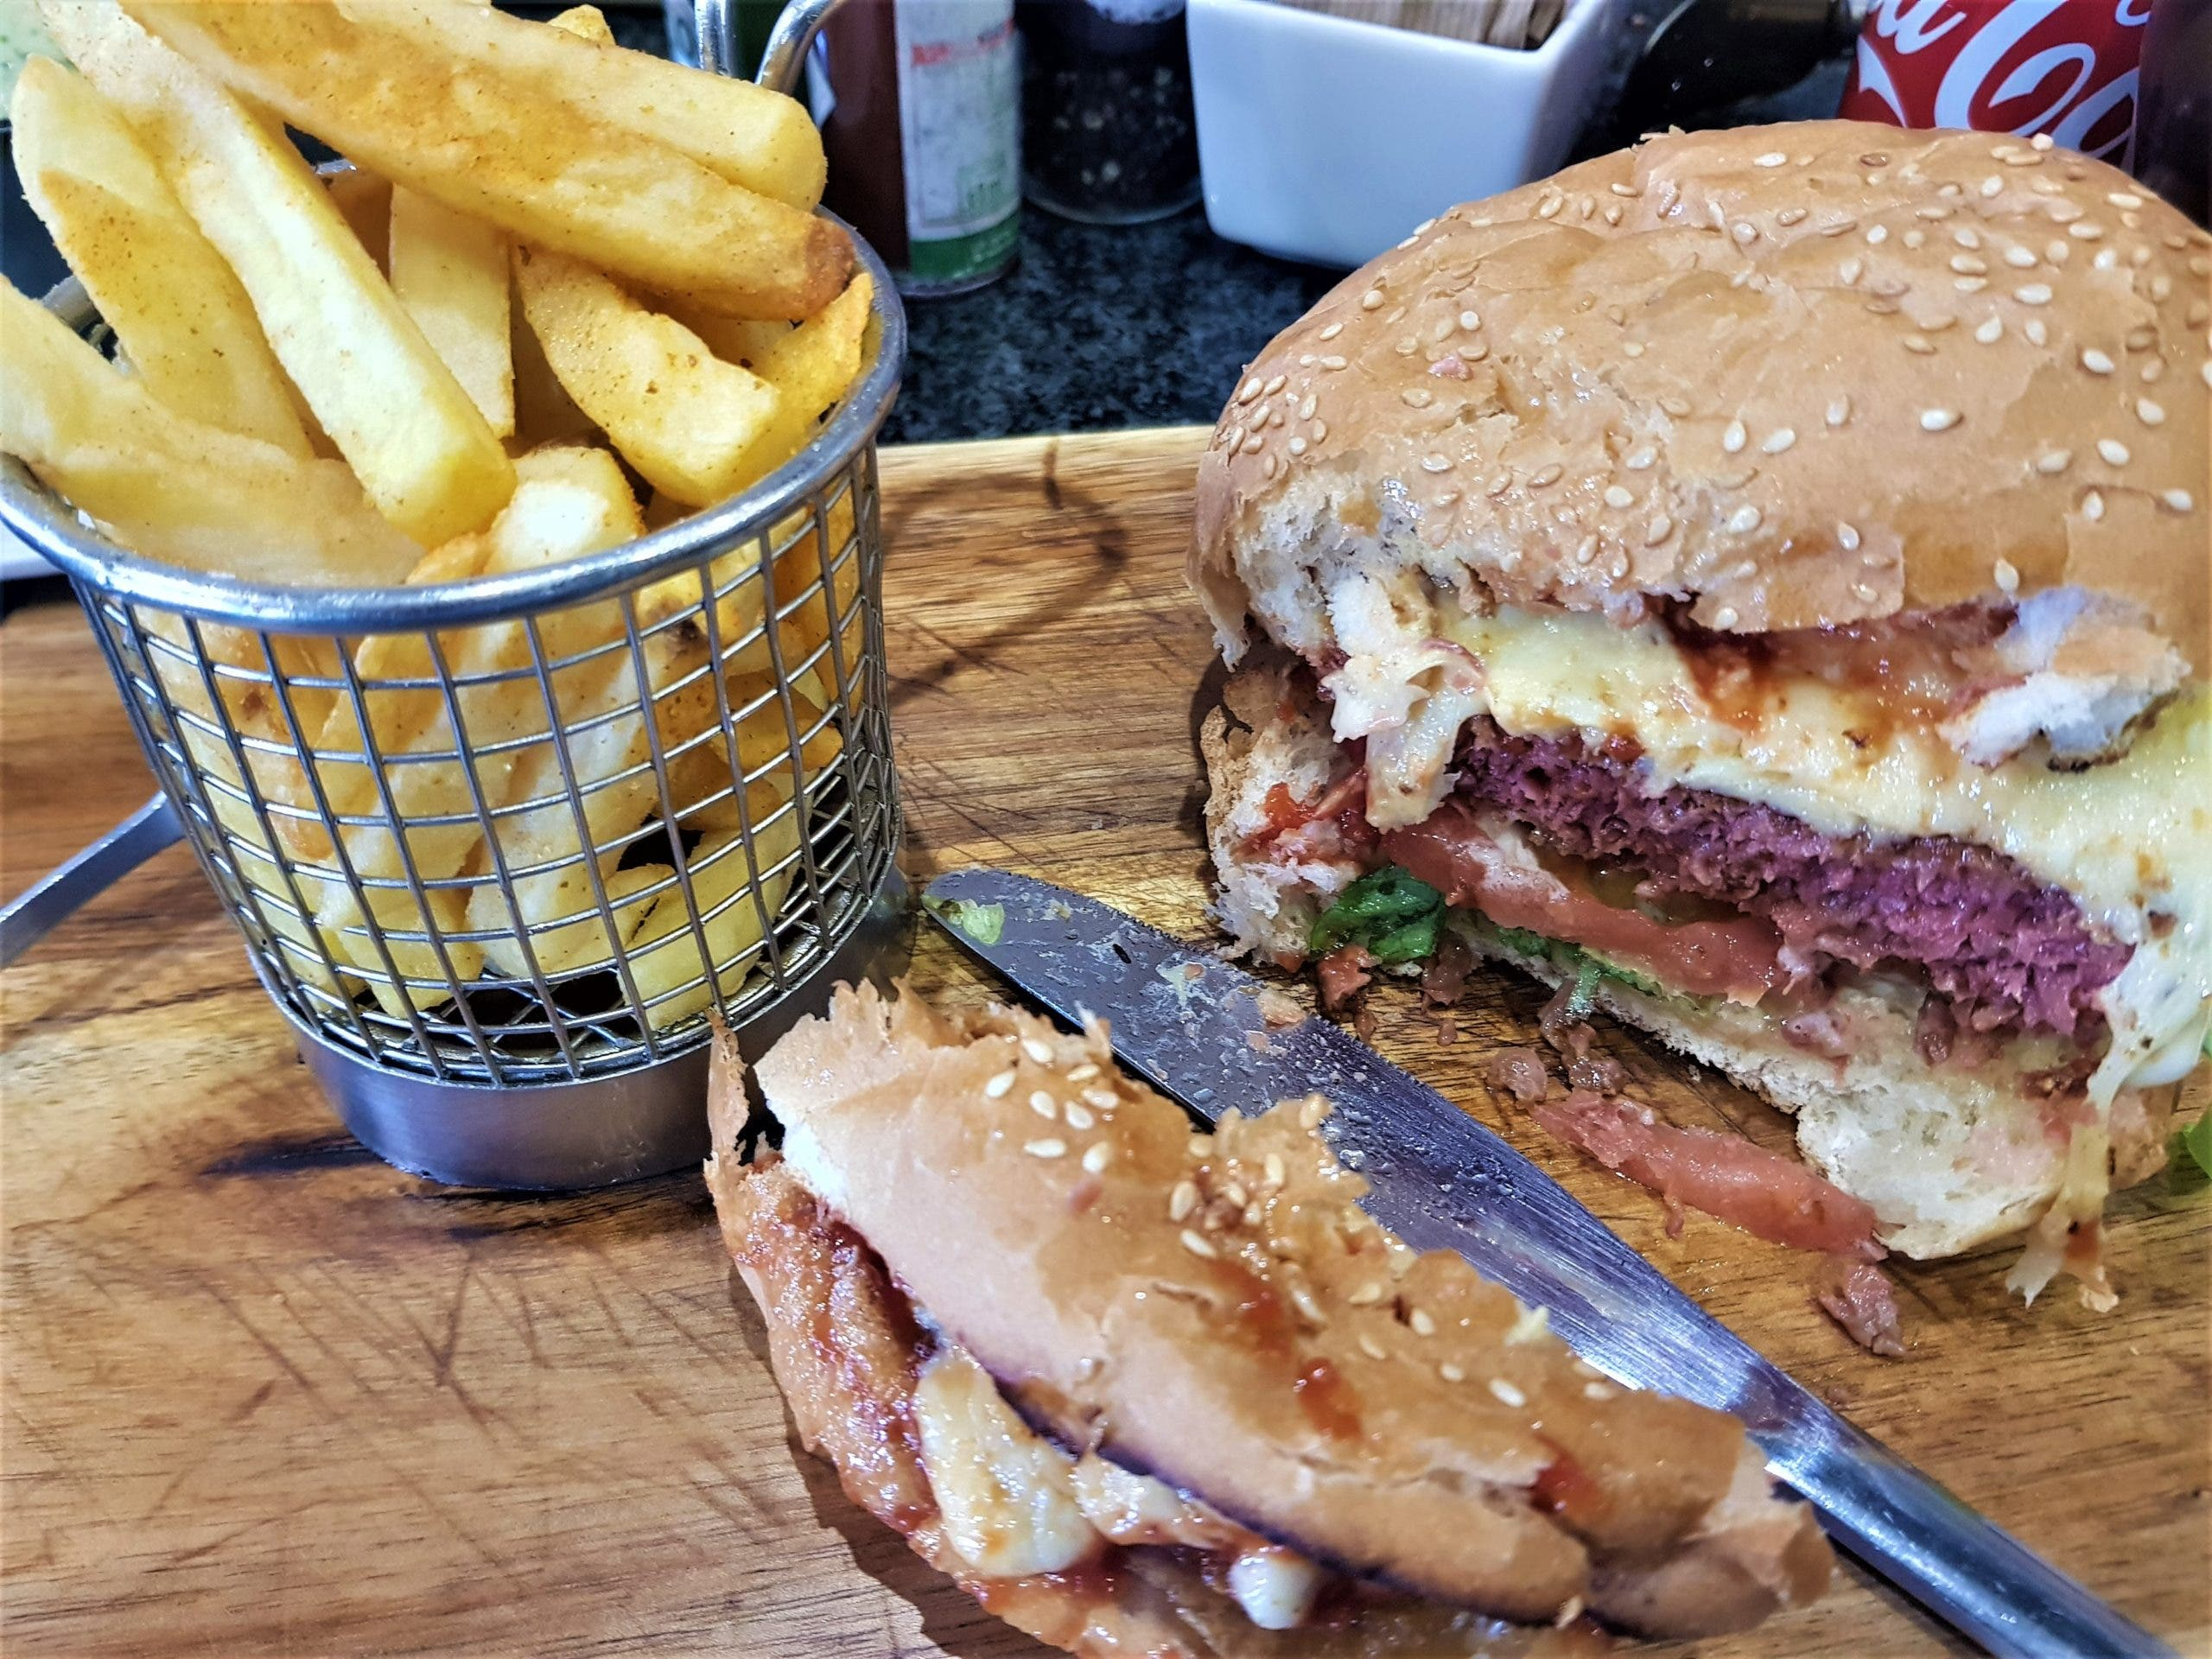 The Beyond Burger at Woolworths Café, Nicolway, Bryanston, Johannesburg, South Africa, Picture by Remeredzai Kuhudzai